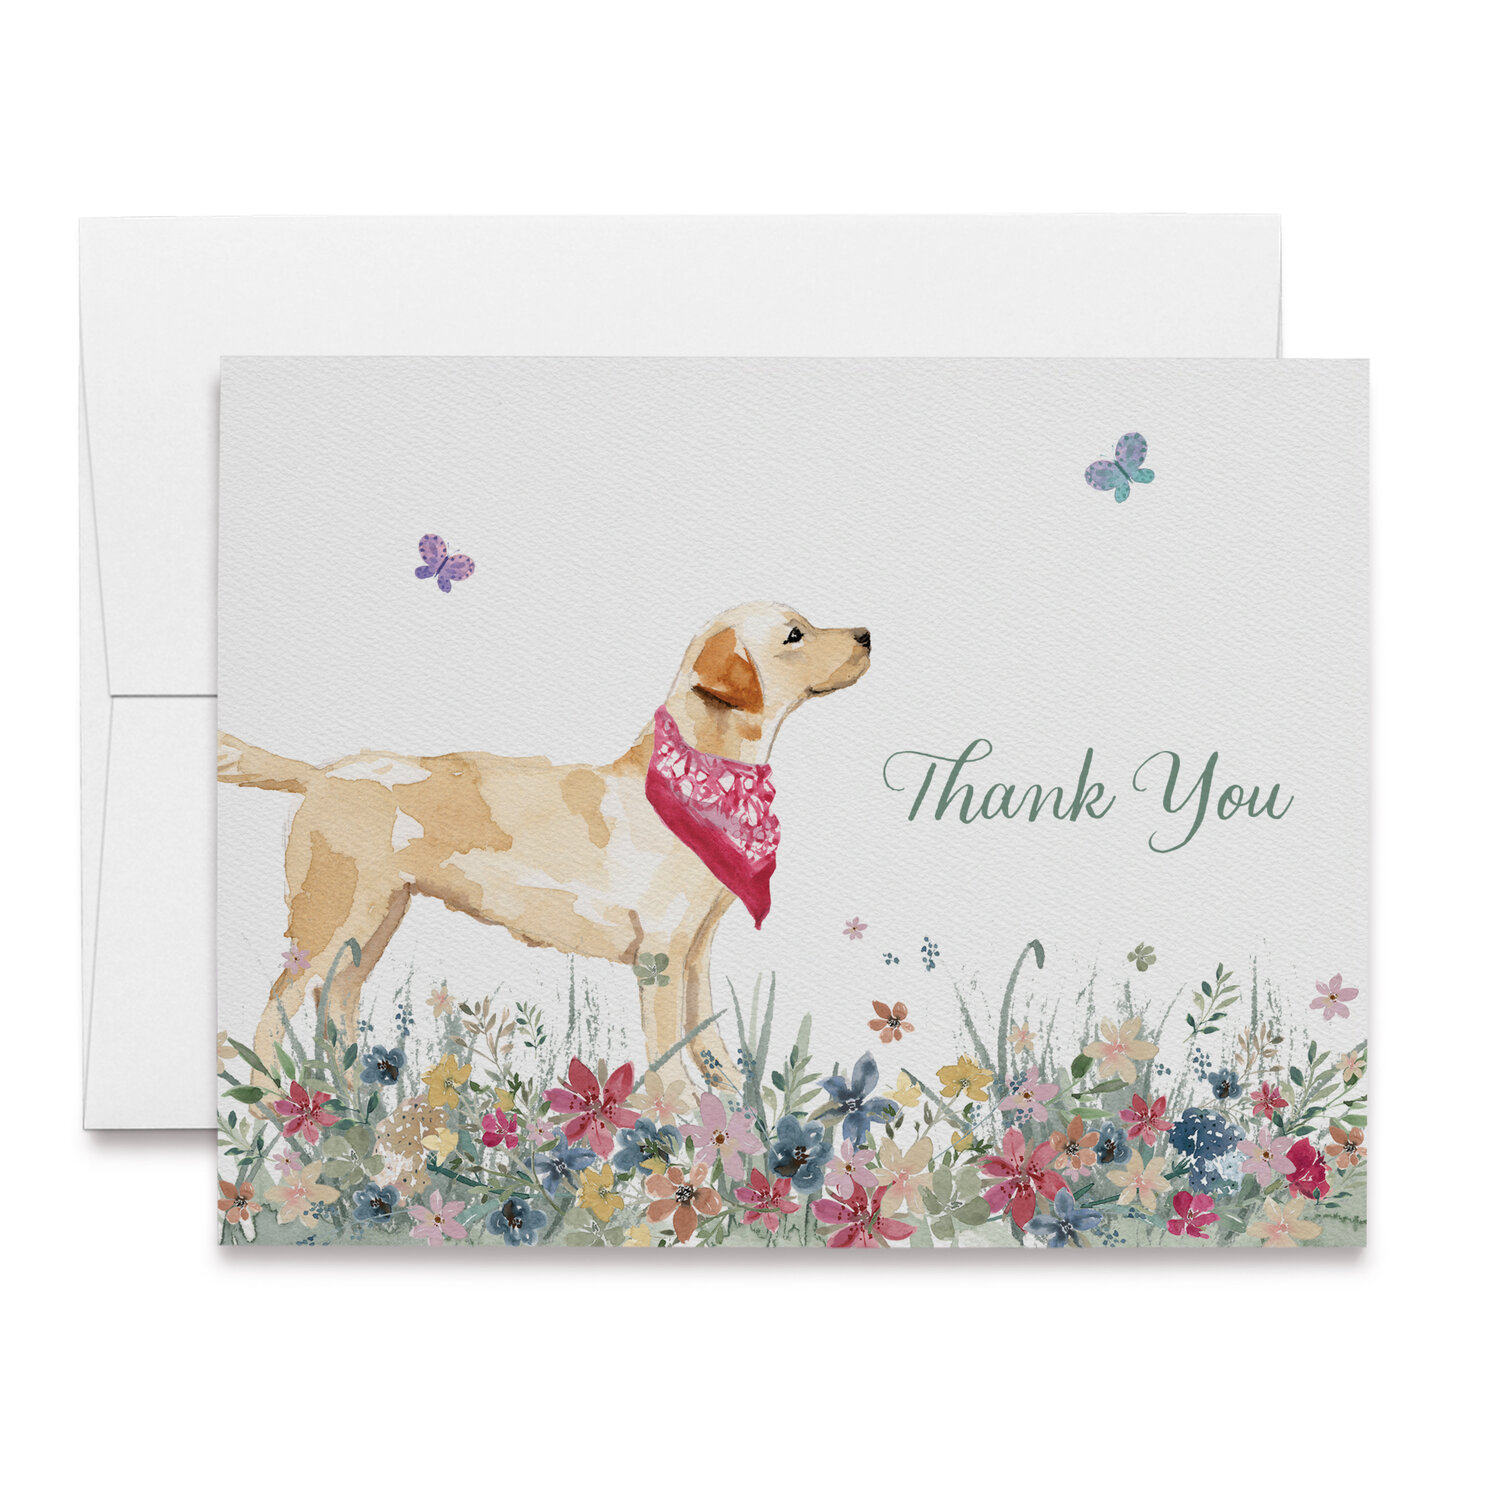 navy blue lab  retriever personalized children/'s notecards  thank you cards  stationery  baby gift